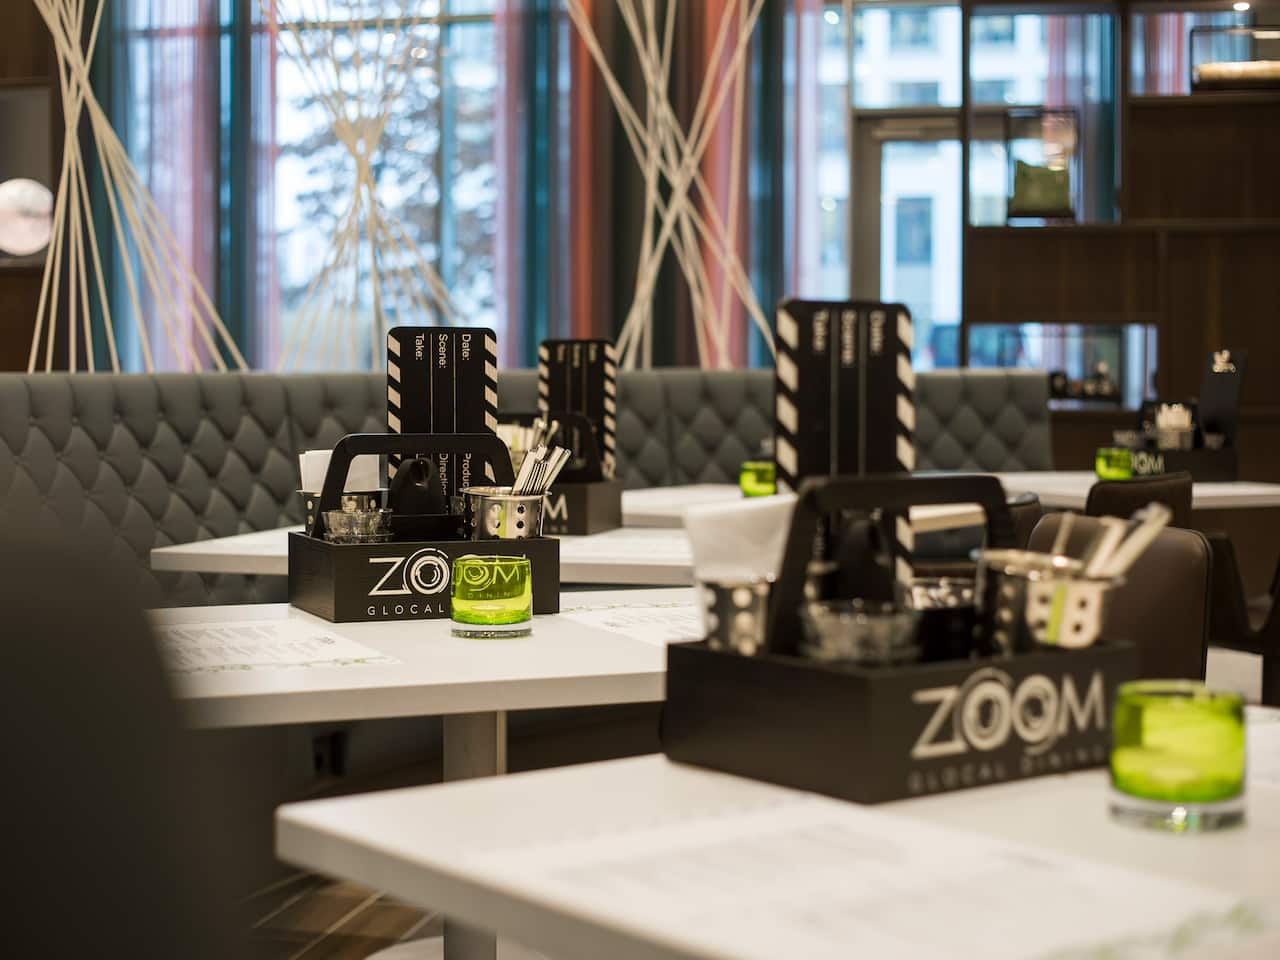 zoom restaurant glocal dining at hyatt place frankfurt airport